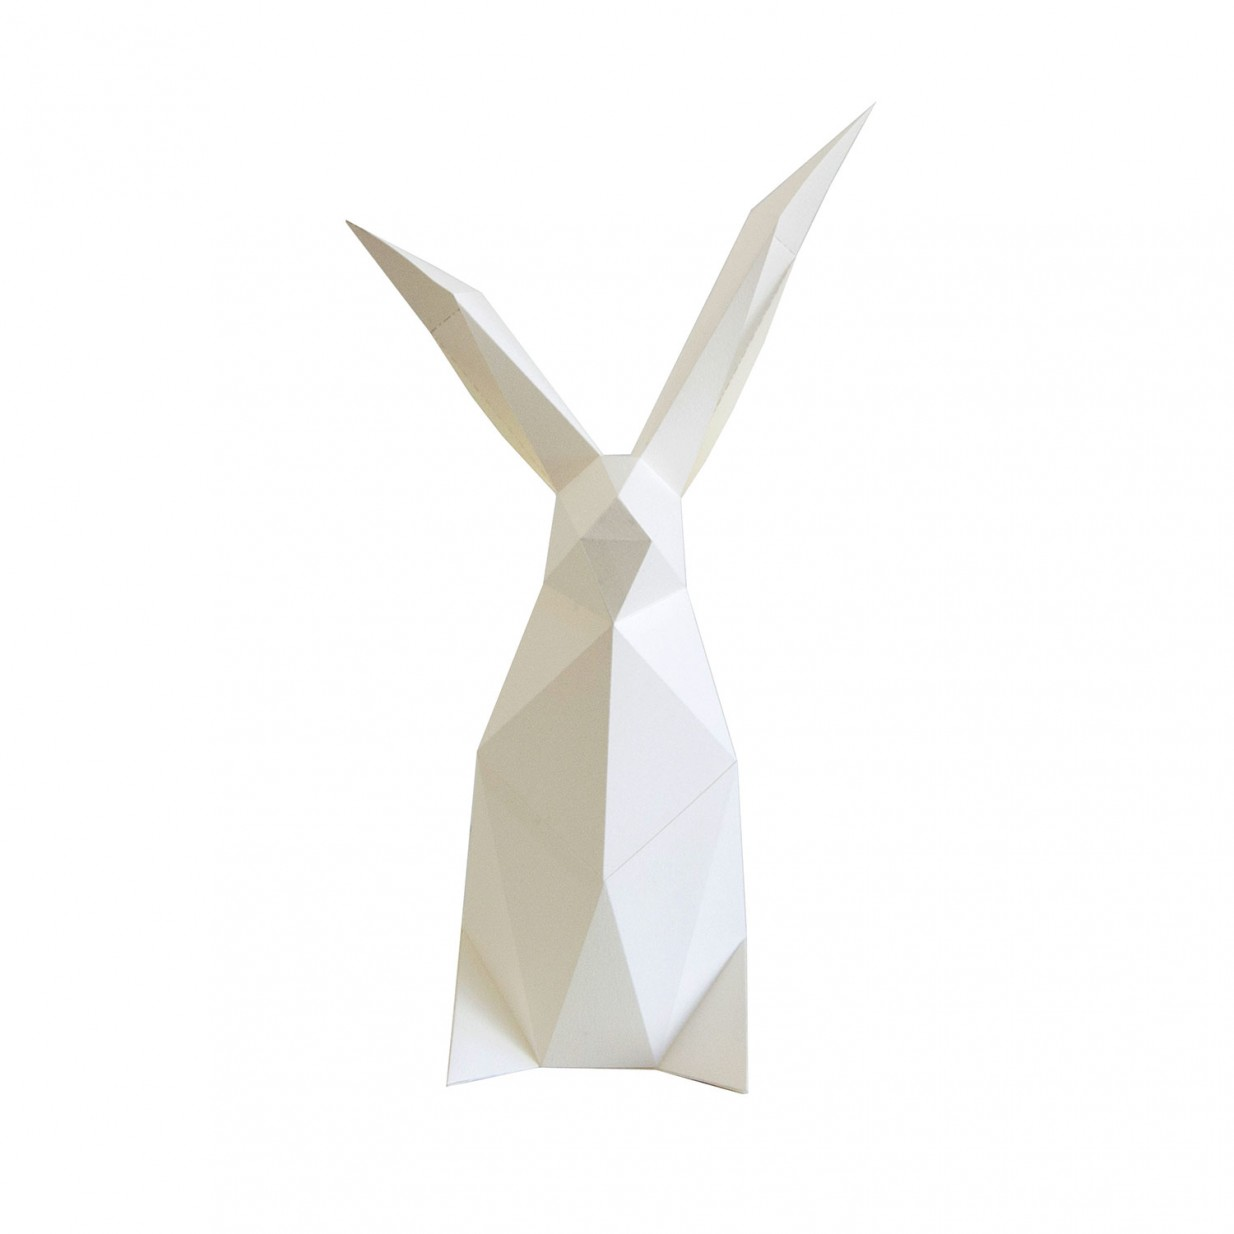 RABBIT DIY paperlamp